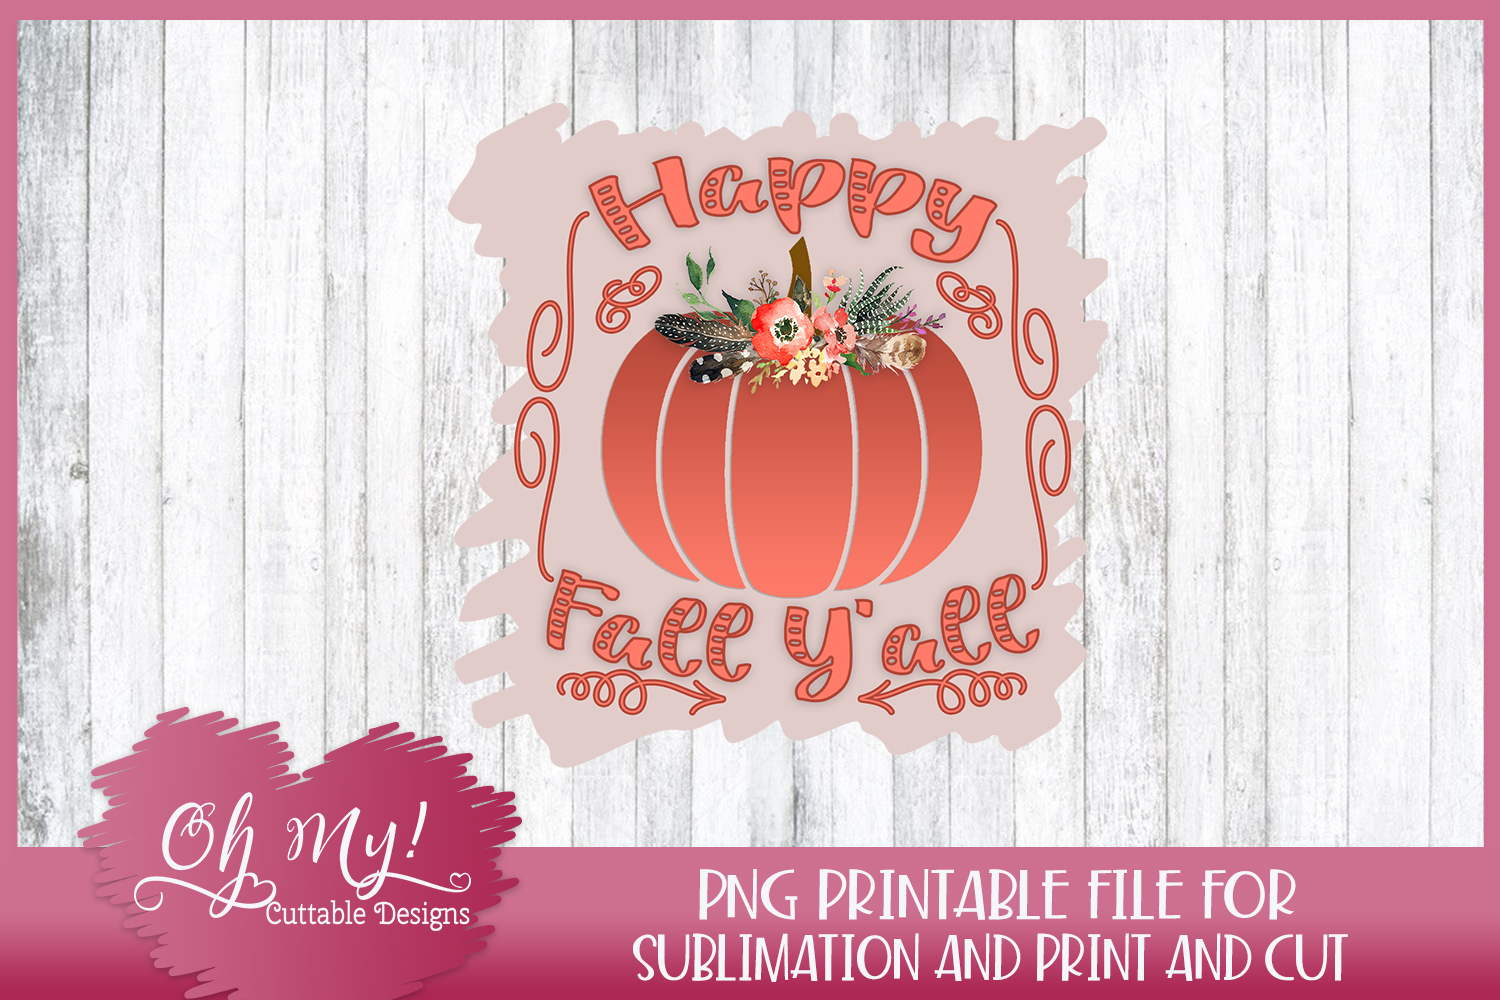 picture regarding Happy Fall Yall Printable named Joyful Slide Yall PNG PrintCut Sublimation Printable